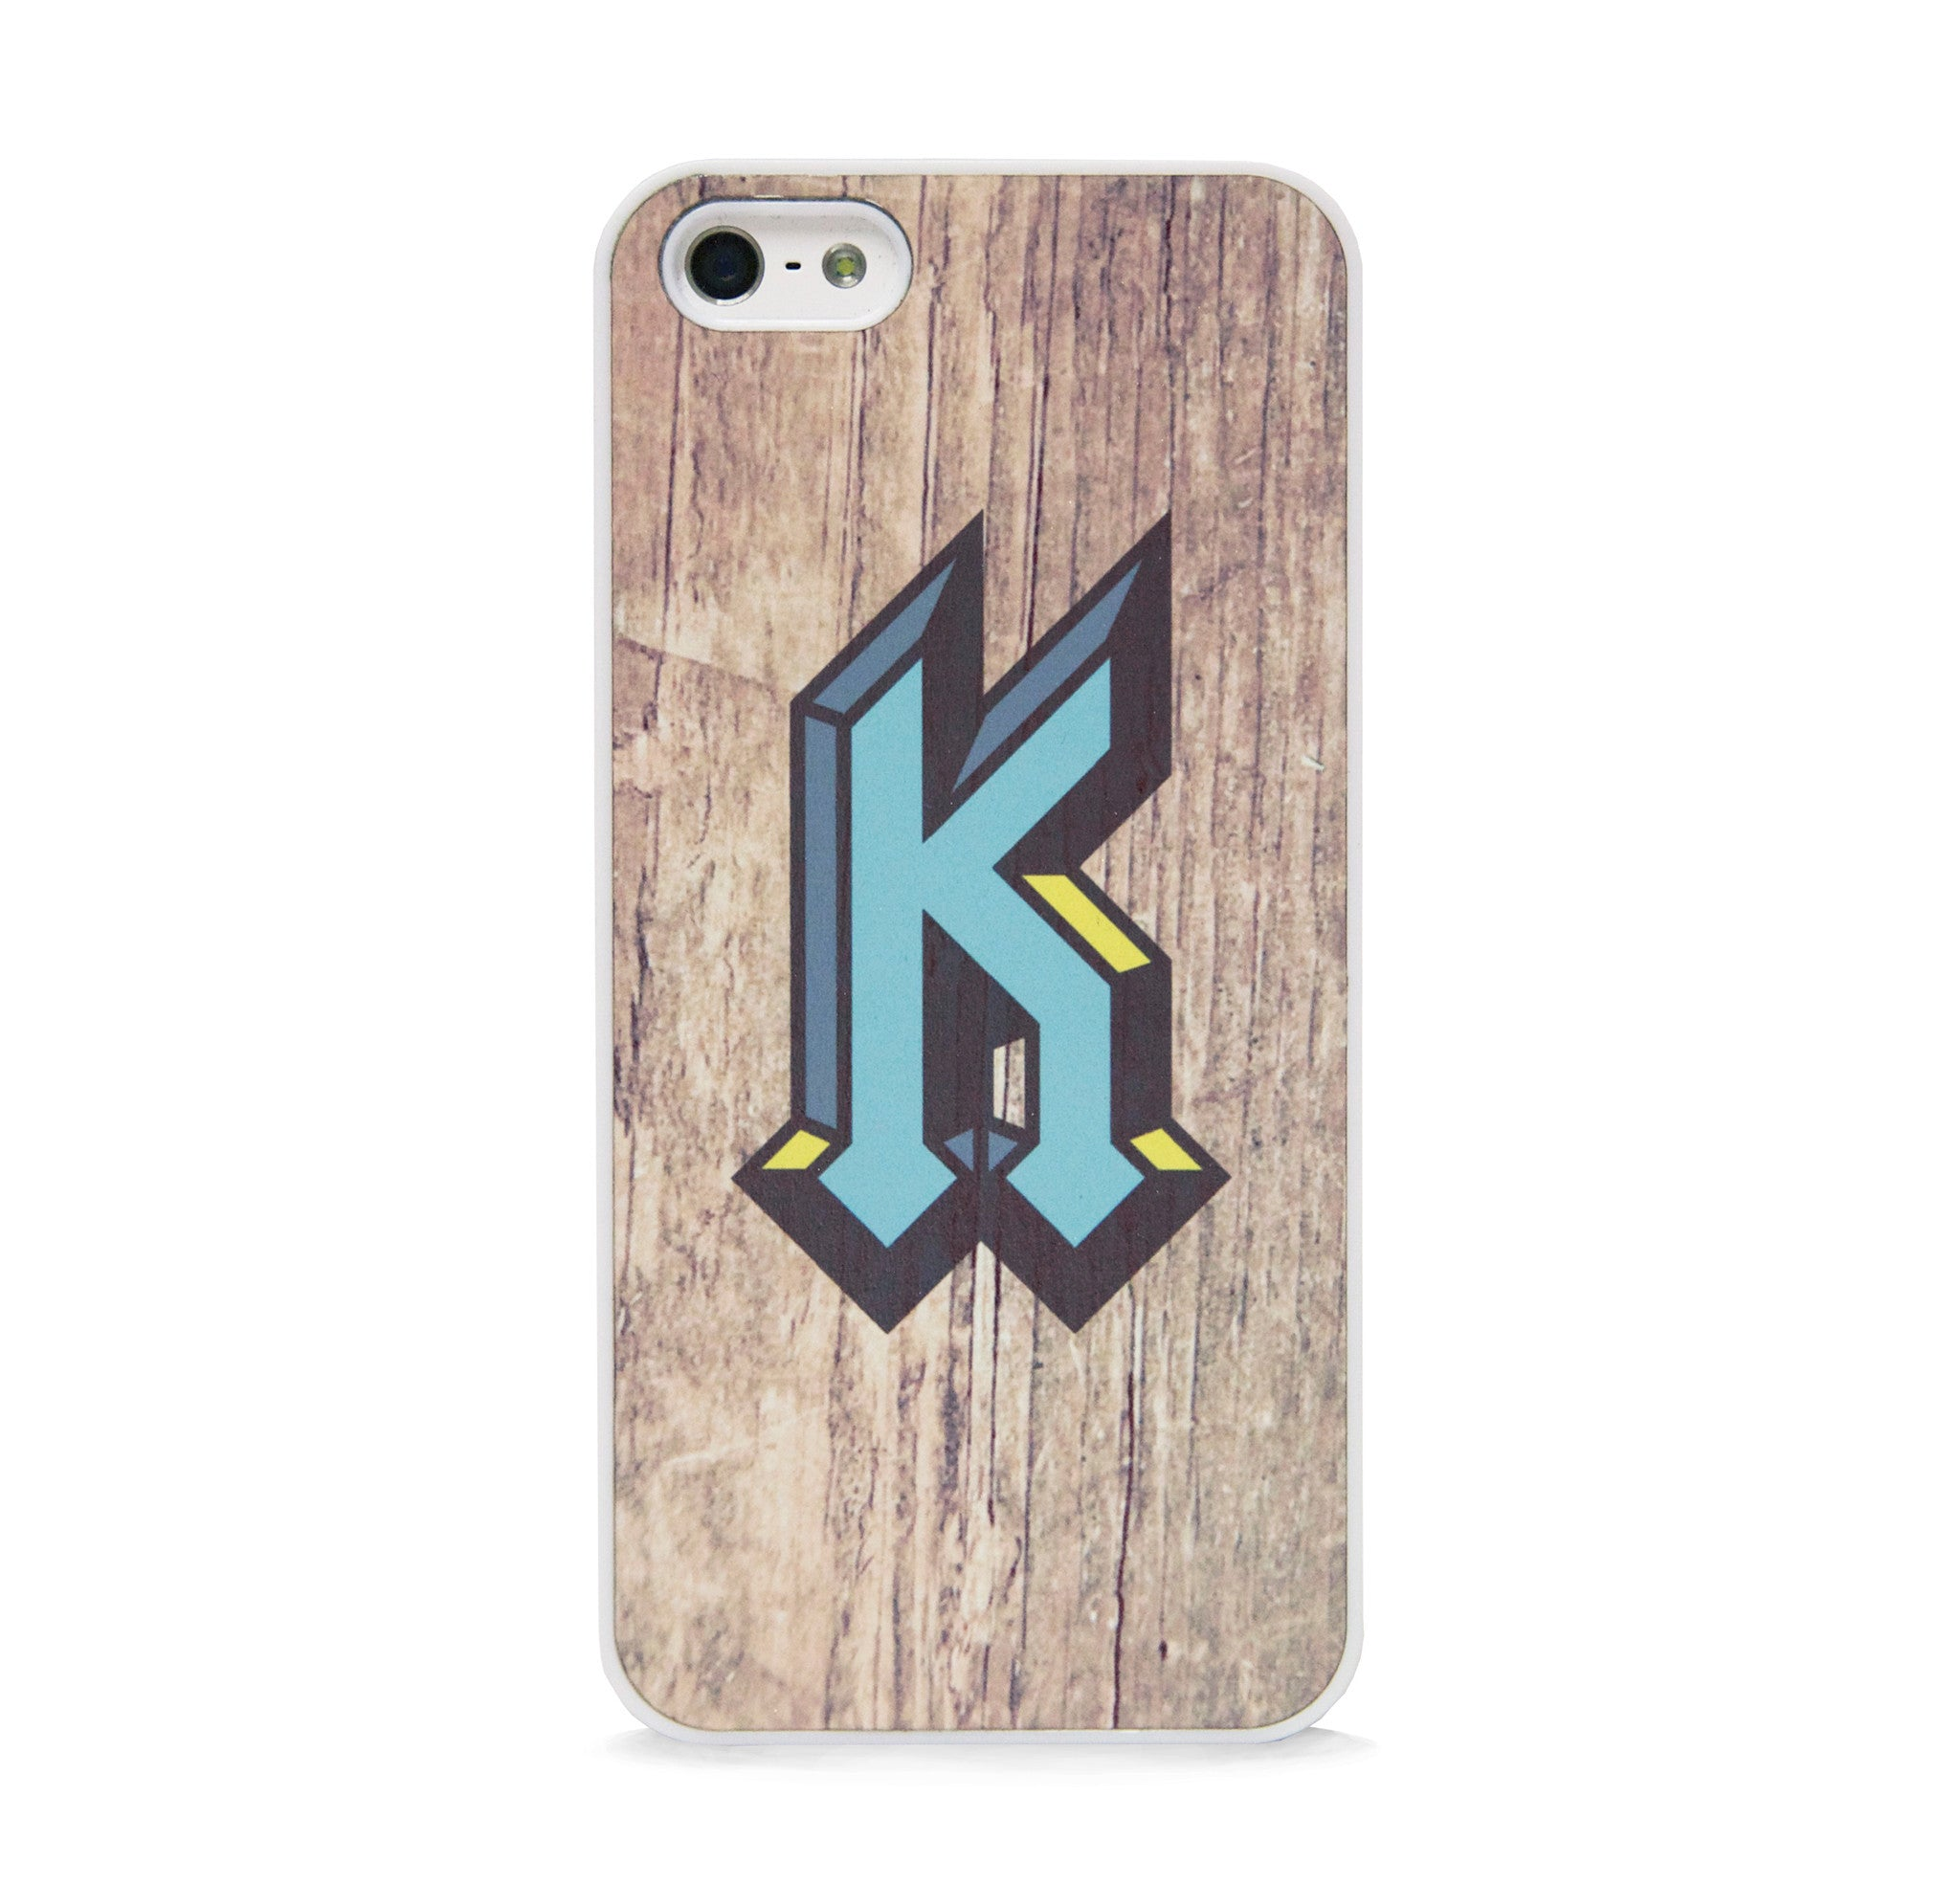 INITIAL K FOR IPHONE 5/5S, IPHONE SE